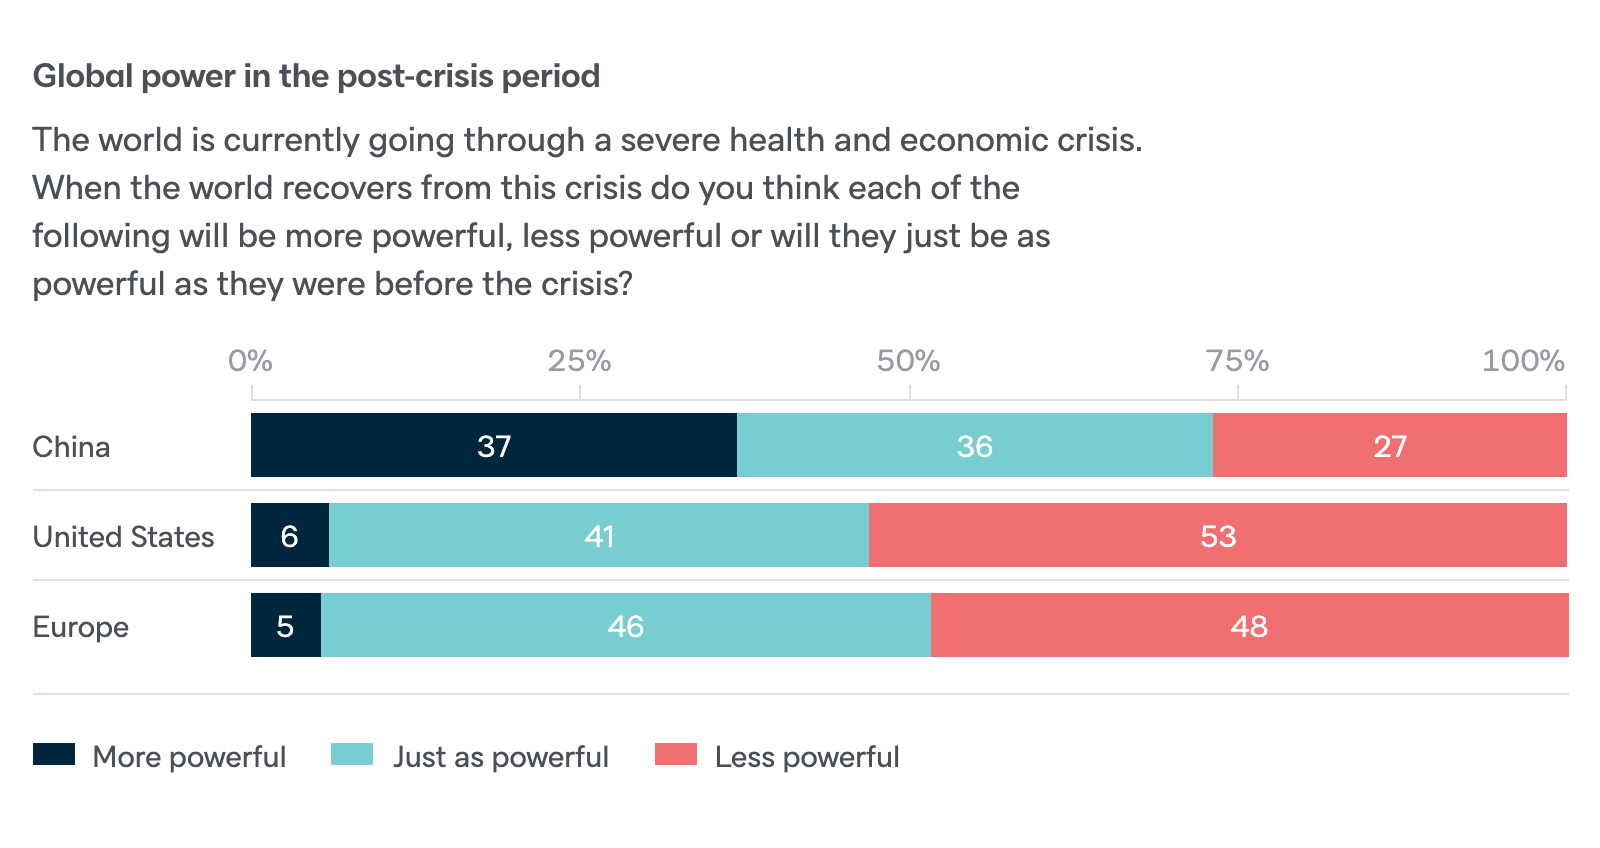 Global power in the post-crisis period